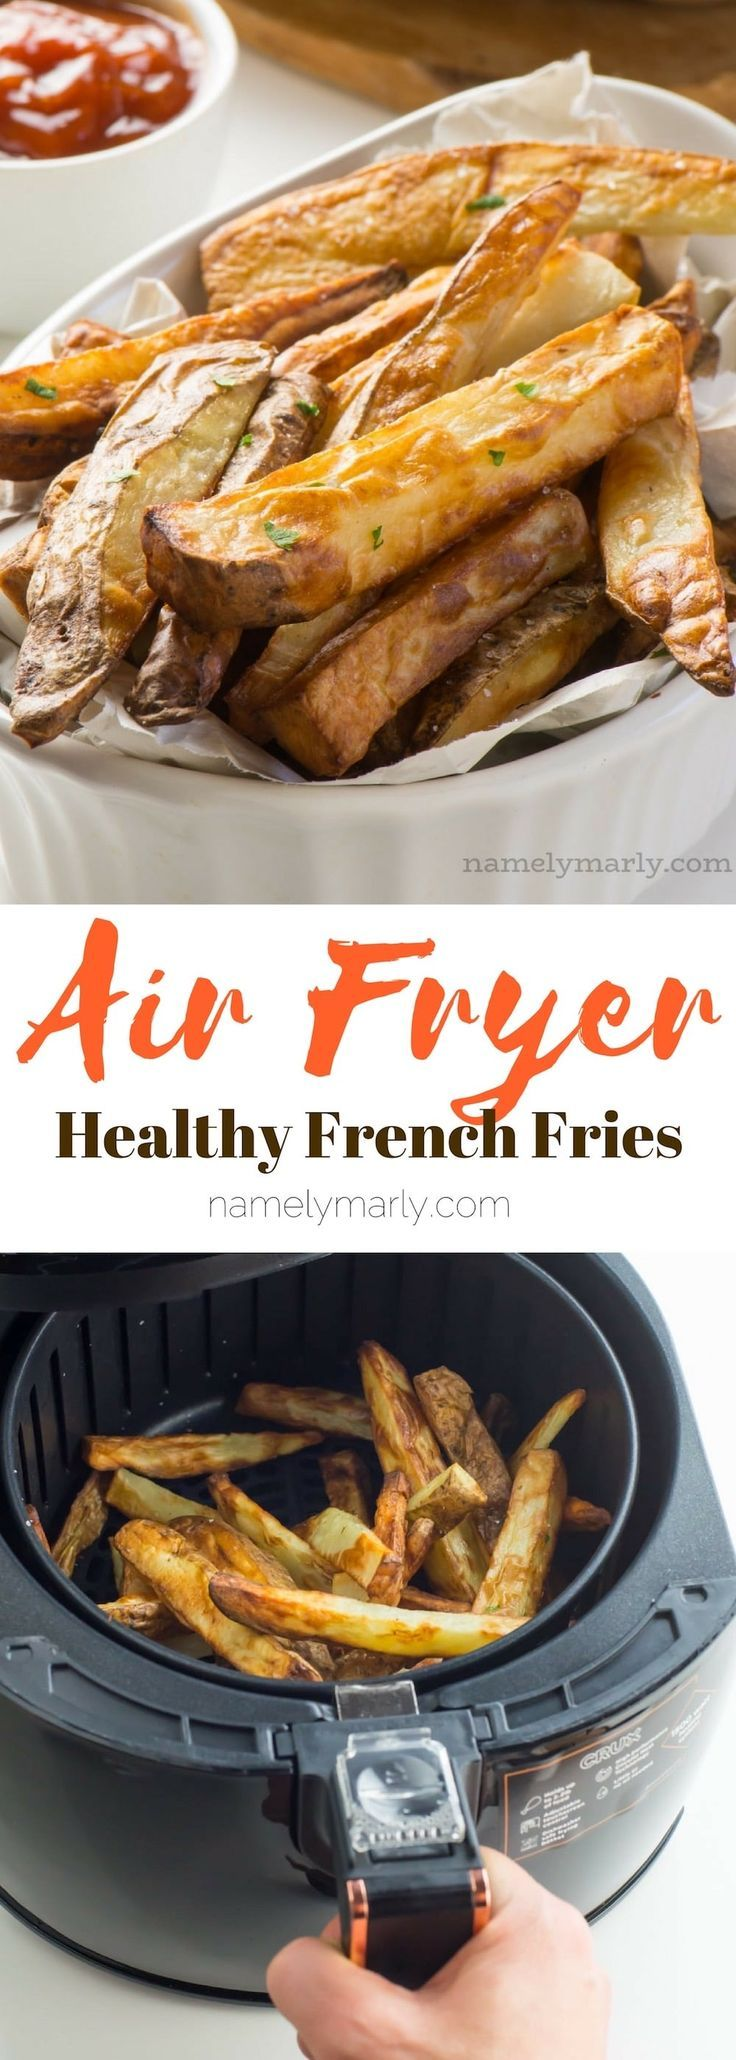 You love french fries? The crispier the better, right? Well, you're going to fall head over heels for these delicious, crispy and HEALTHY air fryer french fries, made with only one teaspoon of olive oil! It's the perfect way to enjoy french fries at home, These crispy fries are low in fat and take only minutes to make! #namelymarly #frenchfries #airfryer #fries via @namelymarly